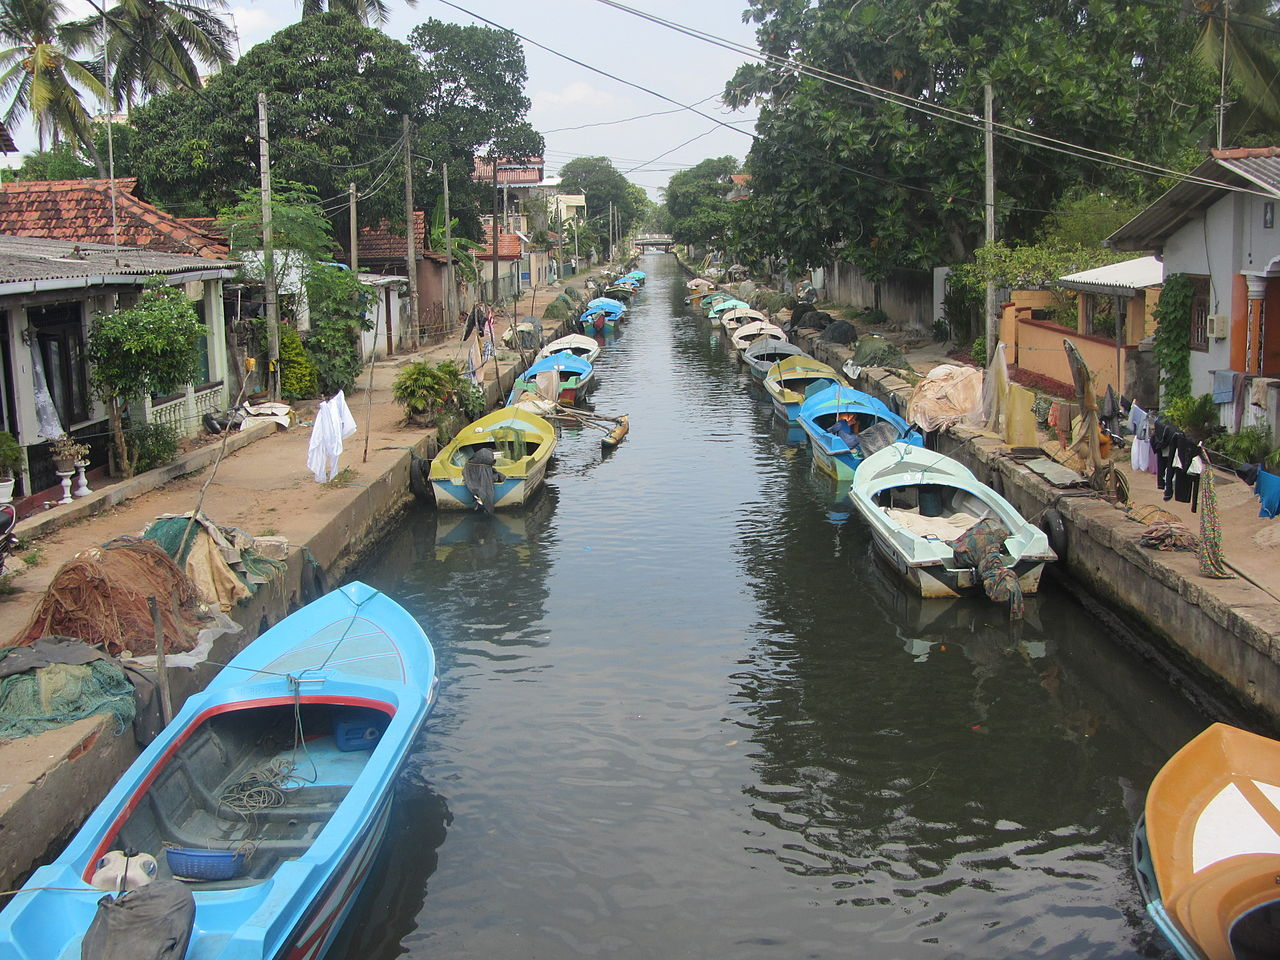 Dutch Canal in Colombo to Be Reinvented as New Tourist Attraction